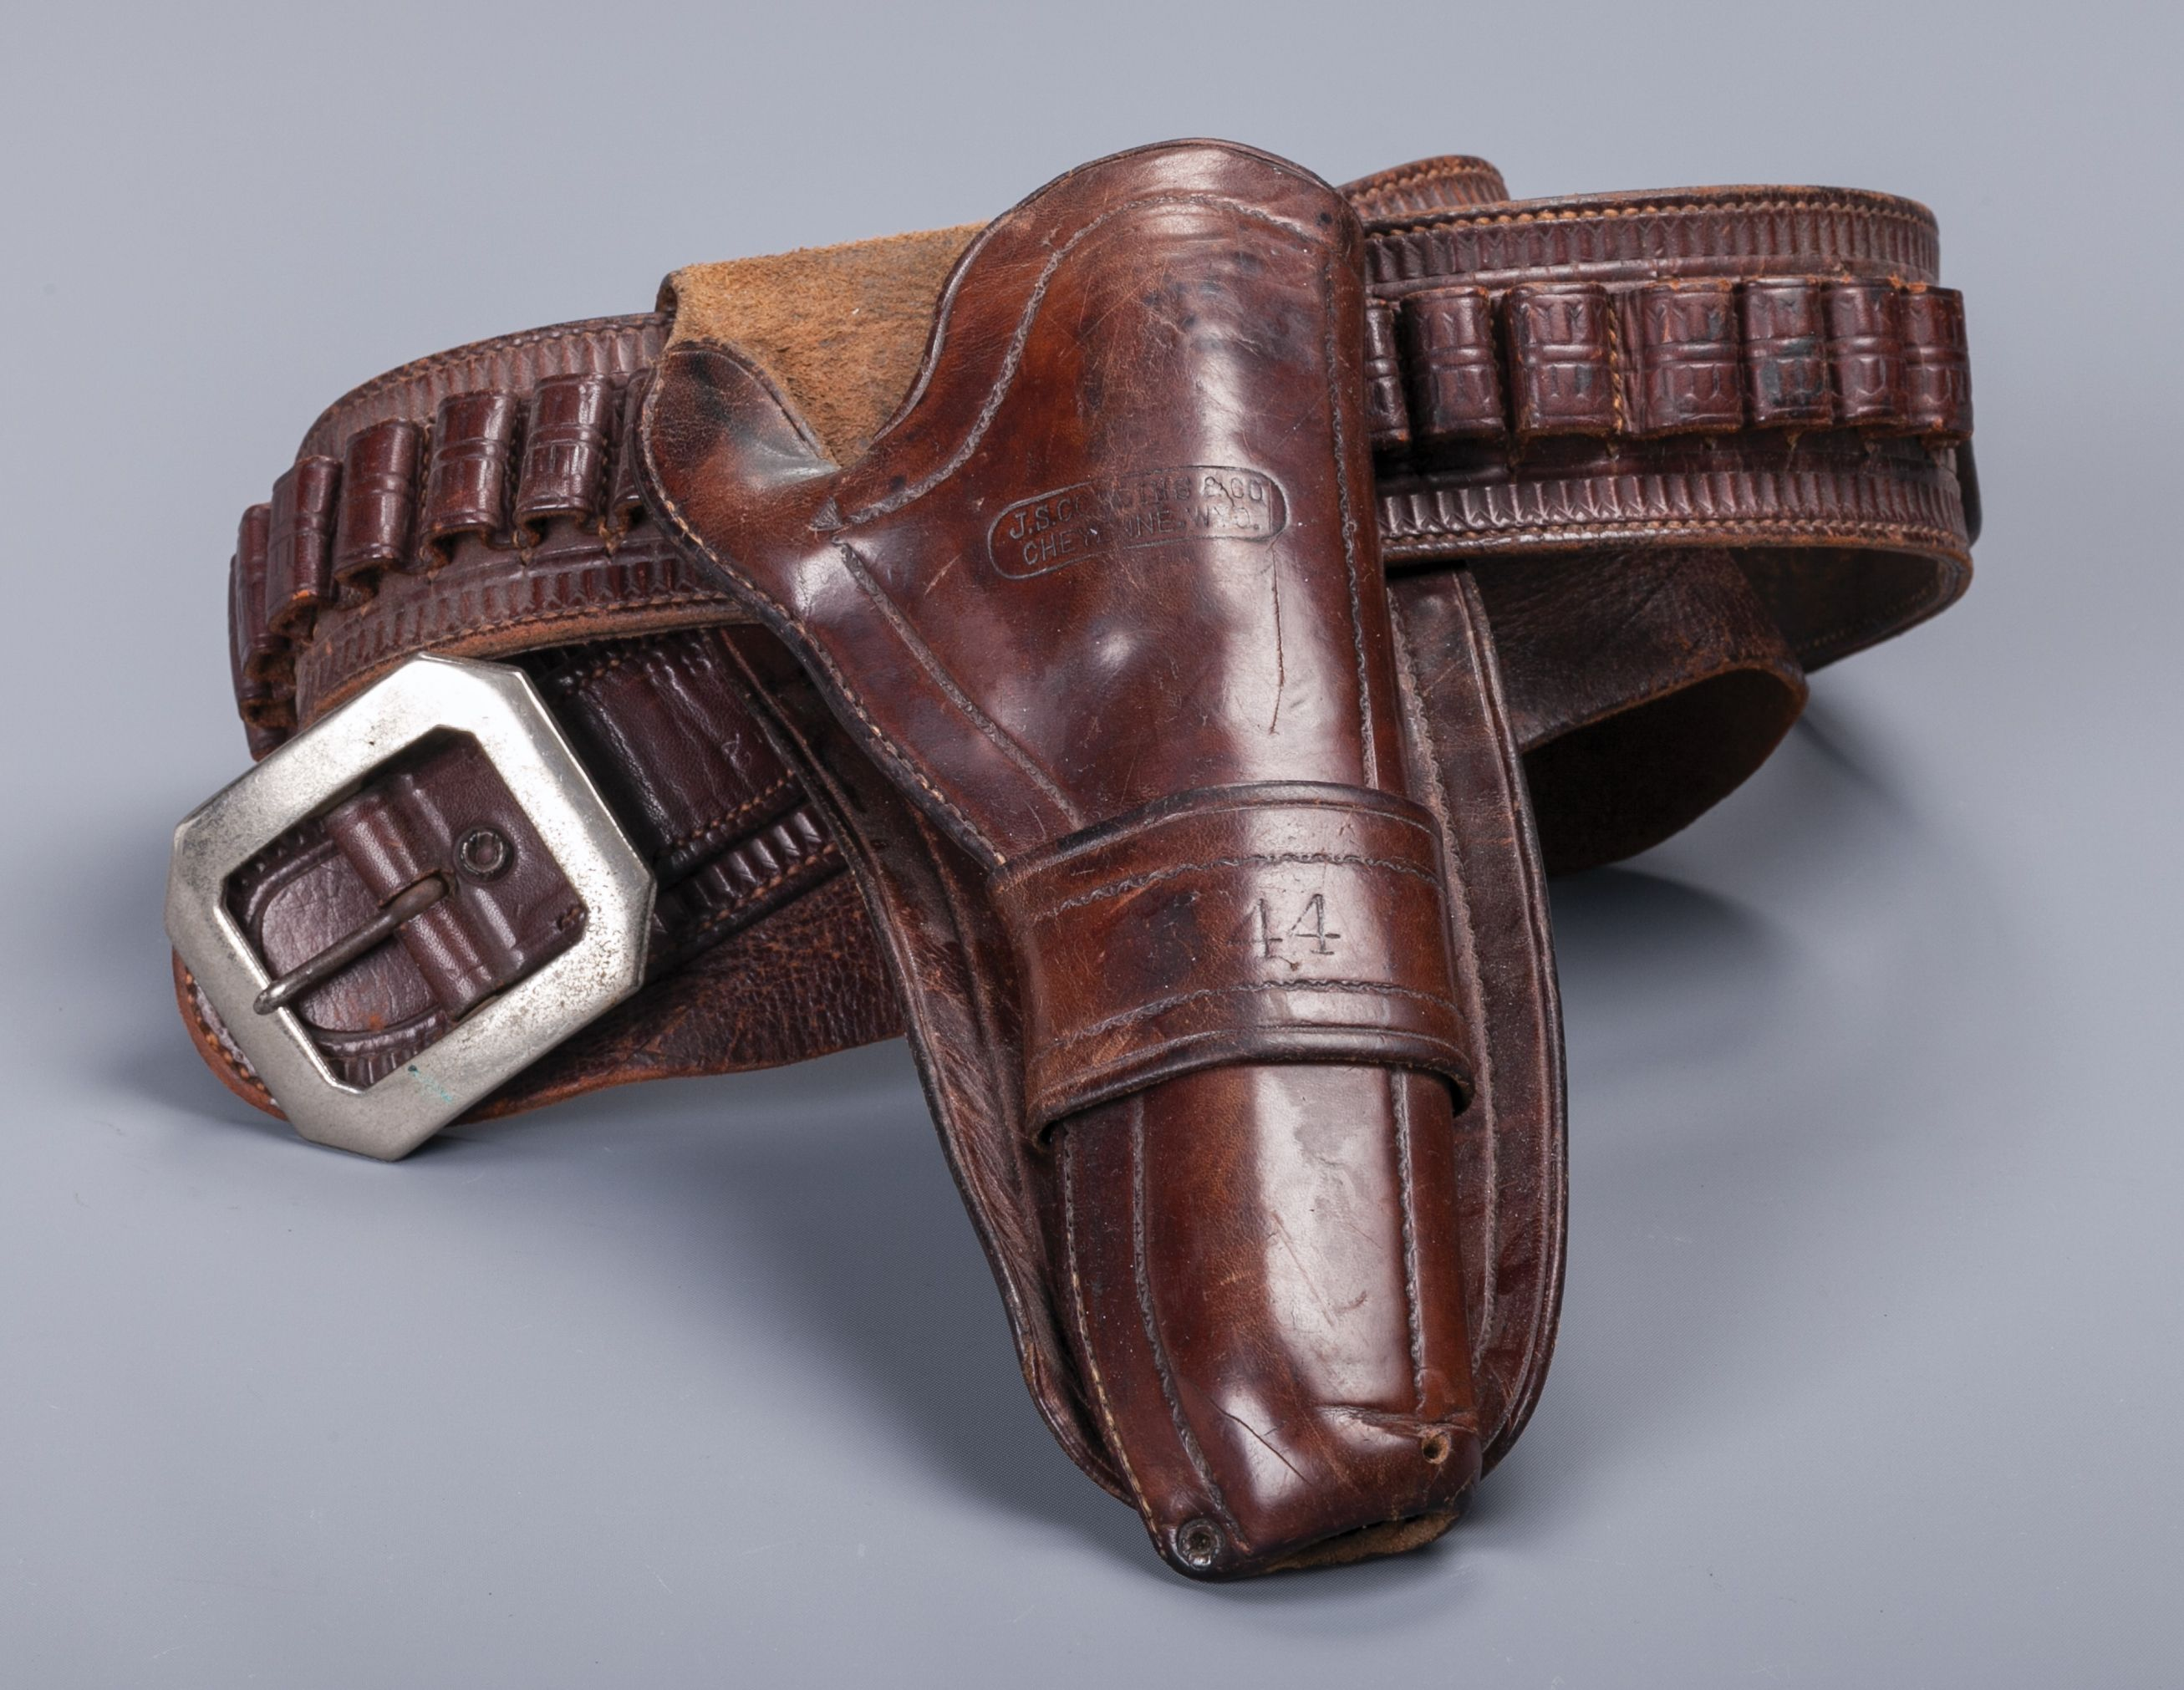 Small Leather Goods - Belts Roy Rogers I5k5U9h8H